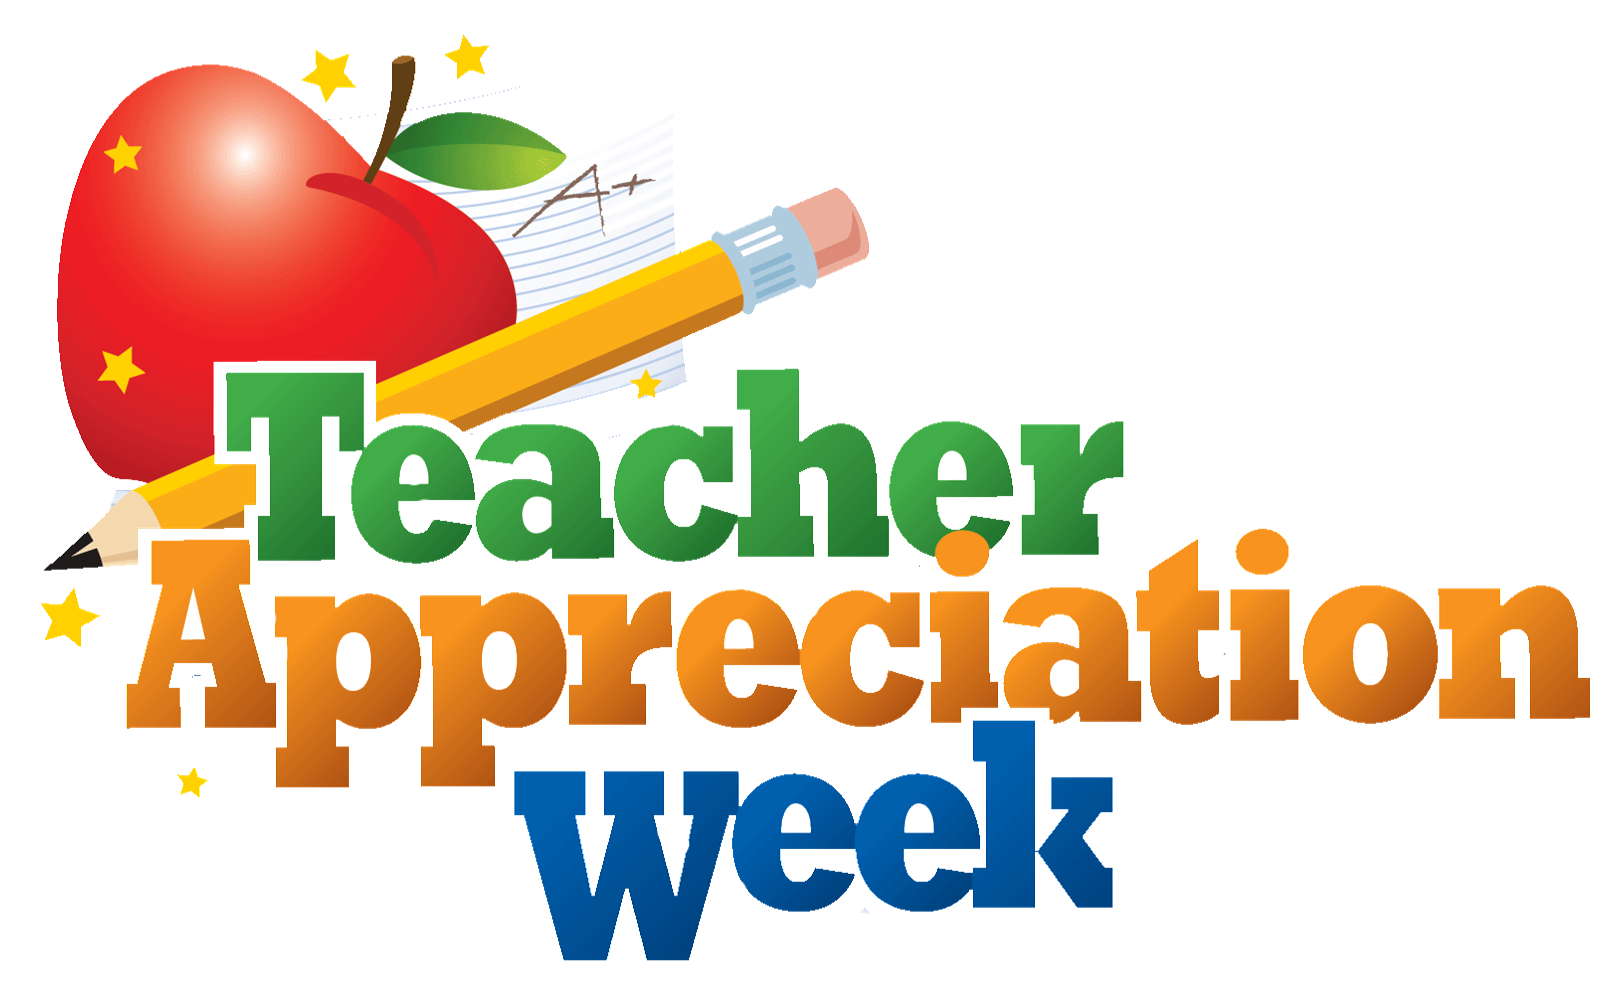 Employee clipart school employee. Teacher appreciation week emerald